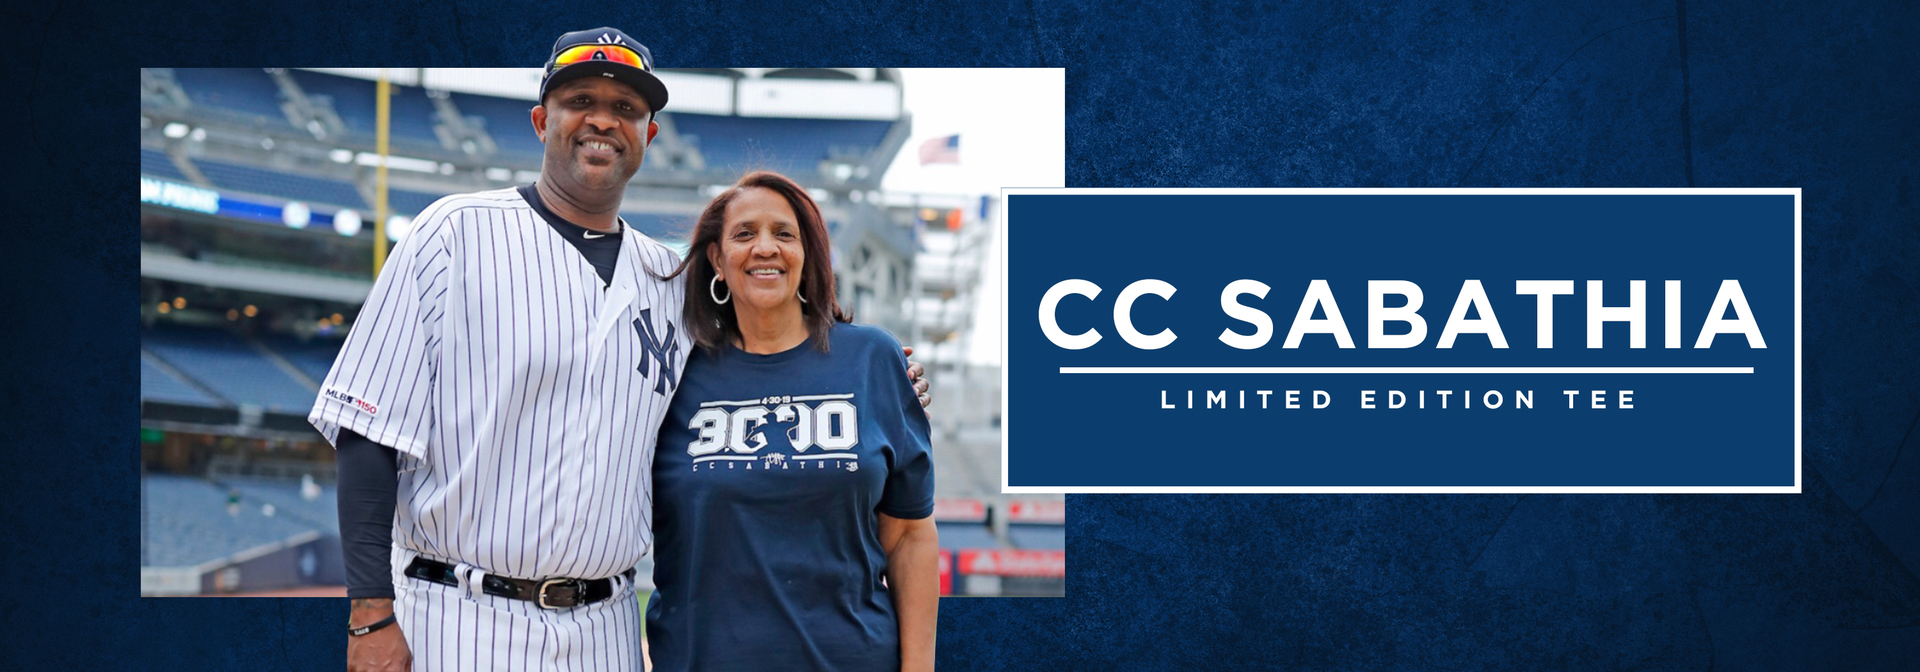 CC Sabathia | Limited Edition Apparel  Store